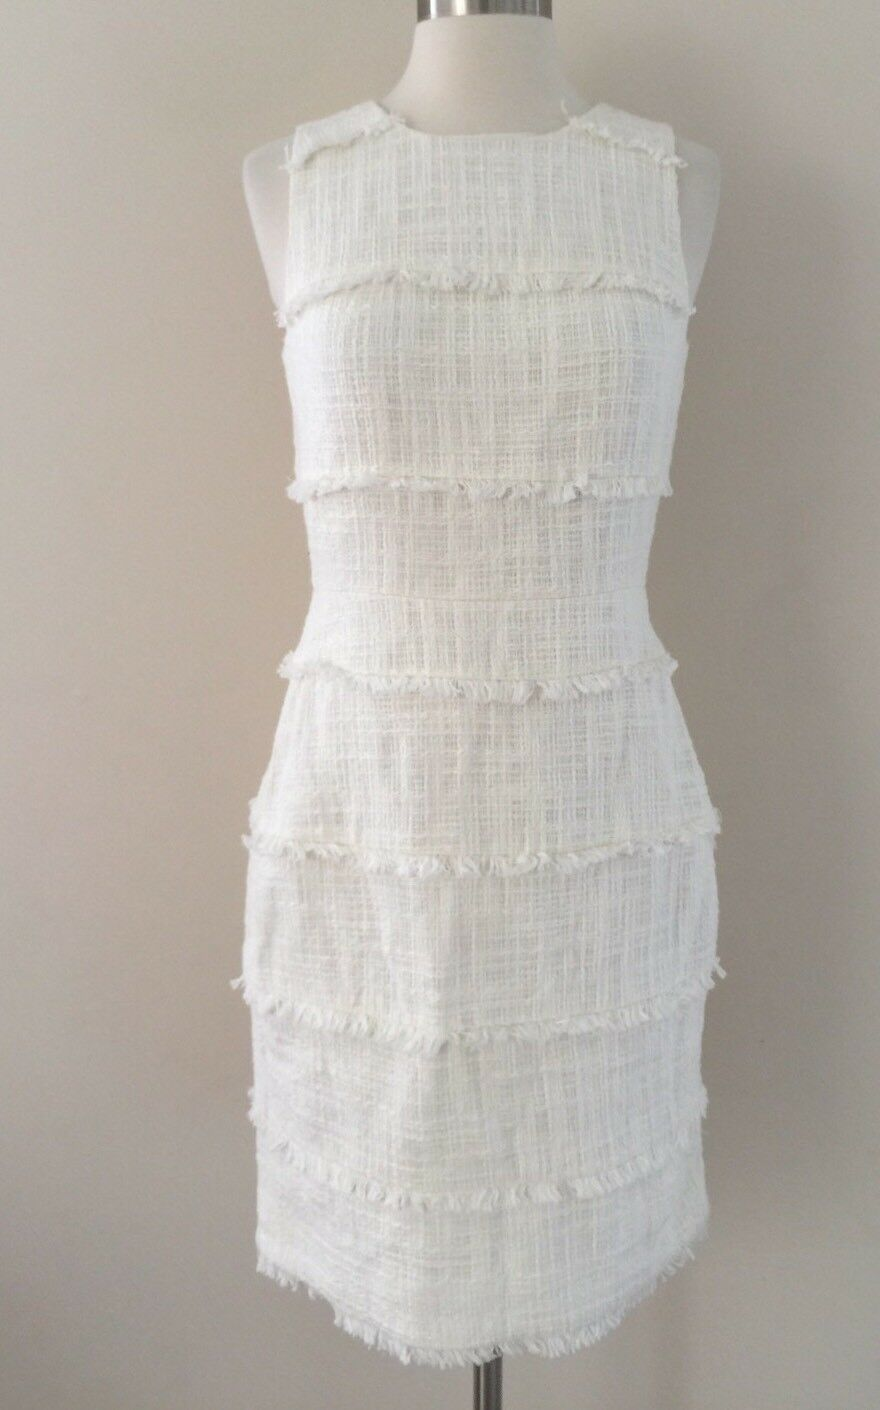 New JCREW Fringy tweed sheath dress Marine Salt Ivory G0965  148 Spring 2017 2